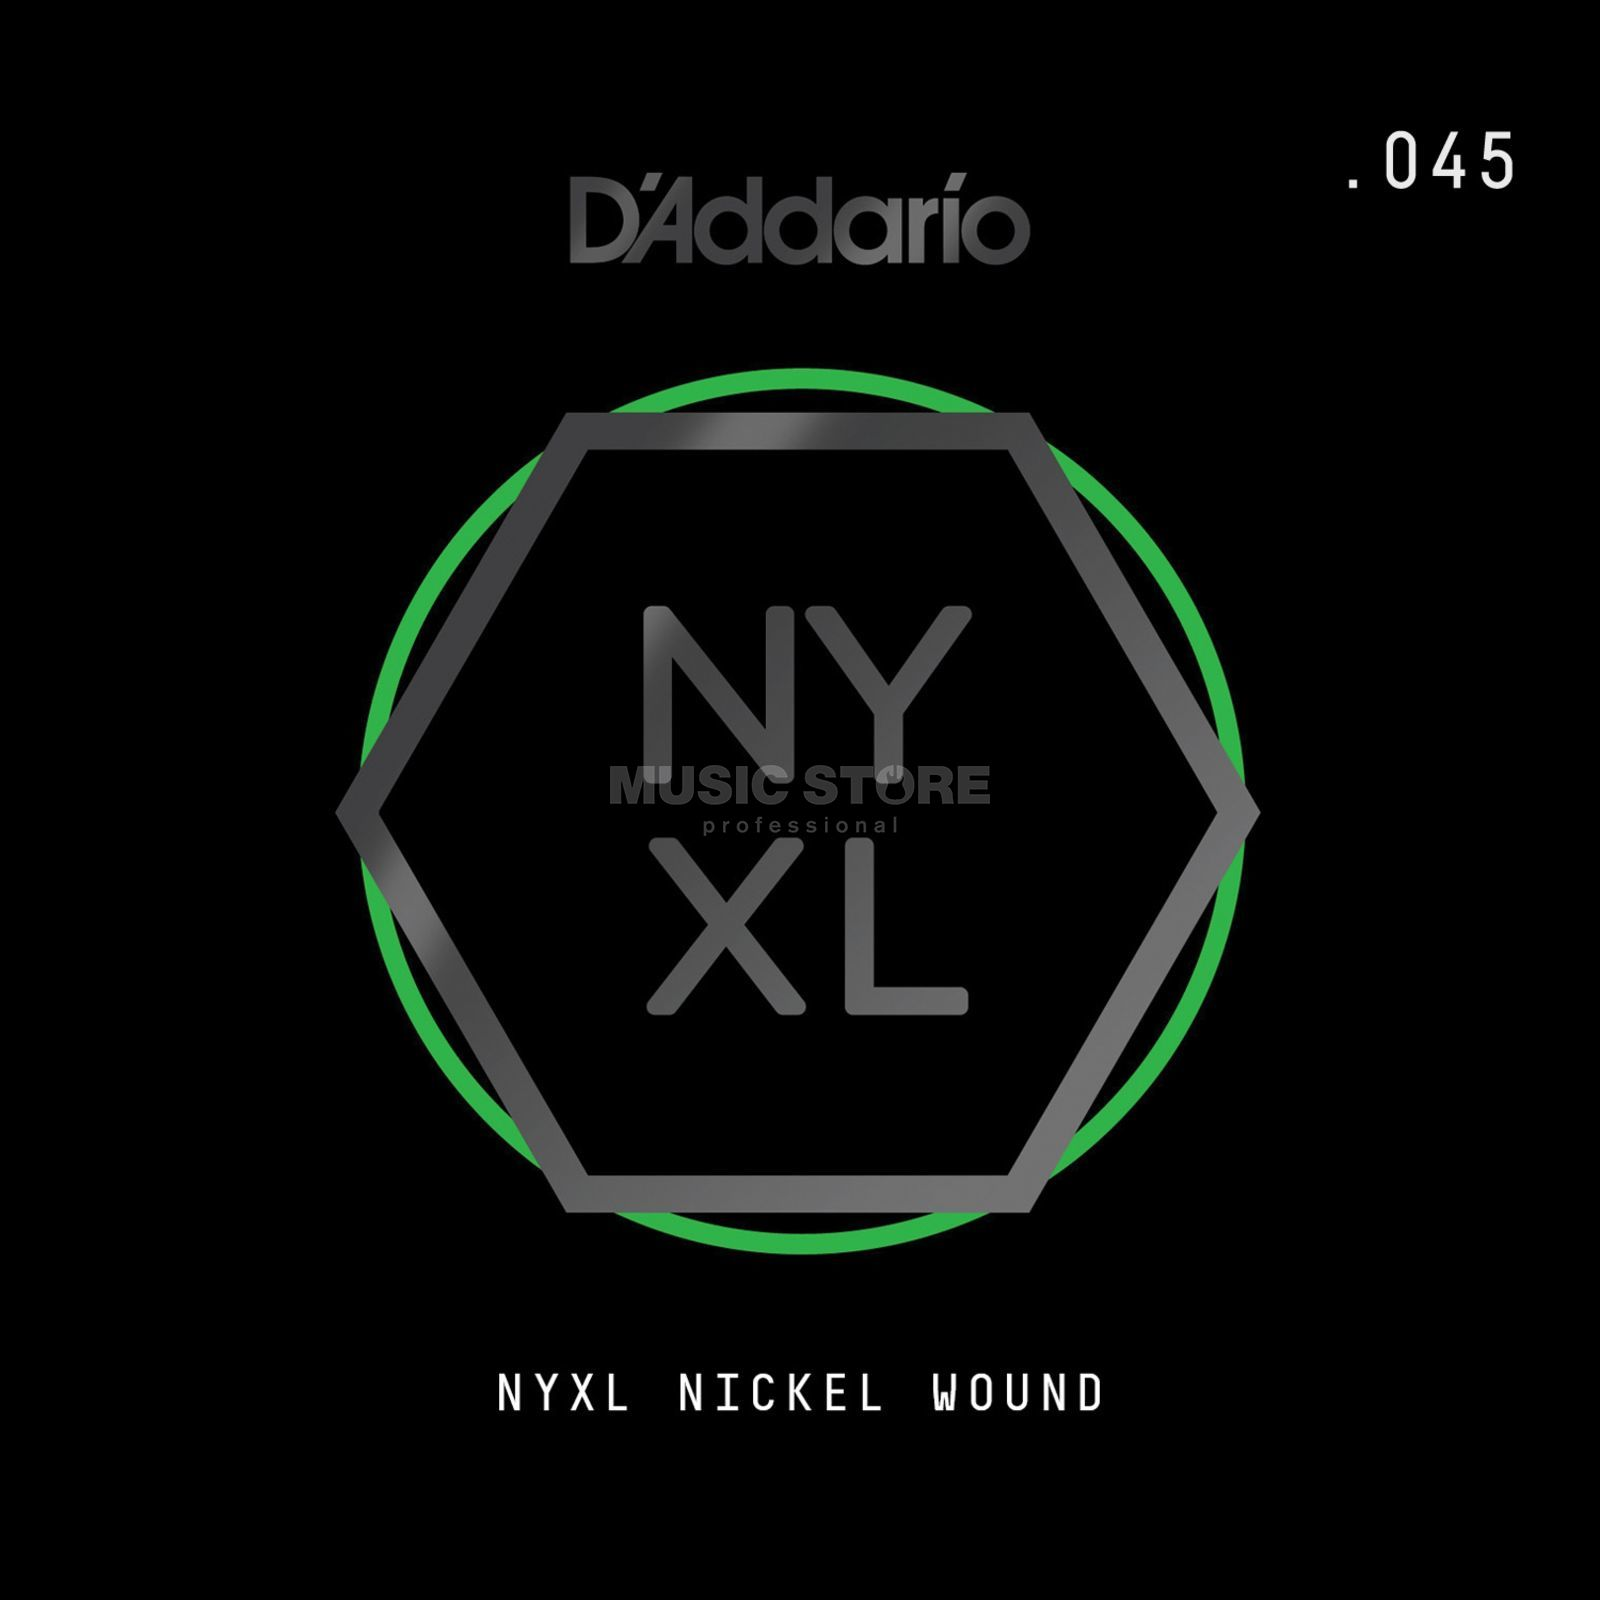 D'Addario NYNW045 Single String Nickel Wound Imagem do produto